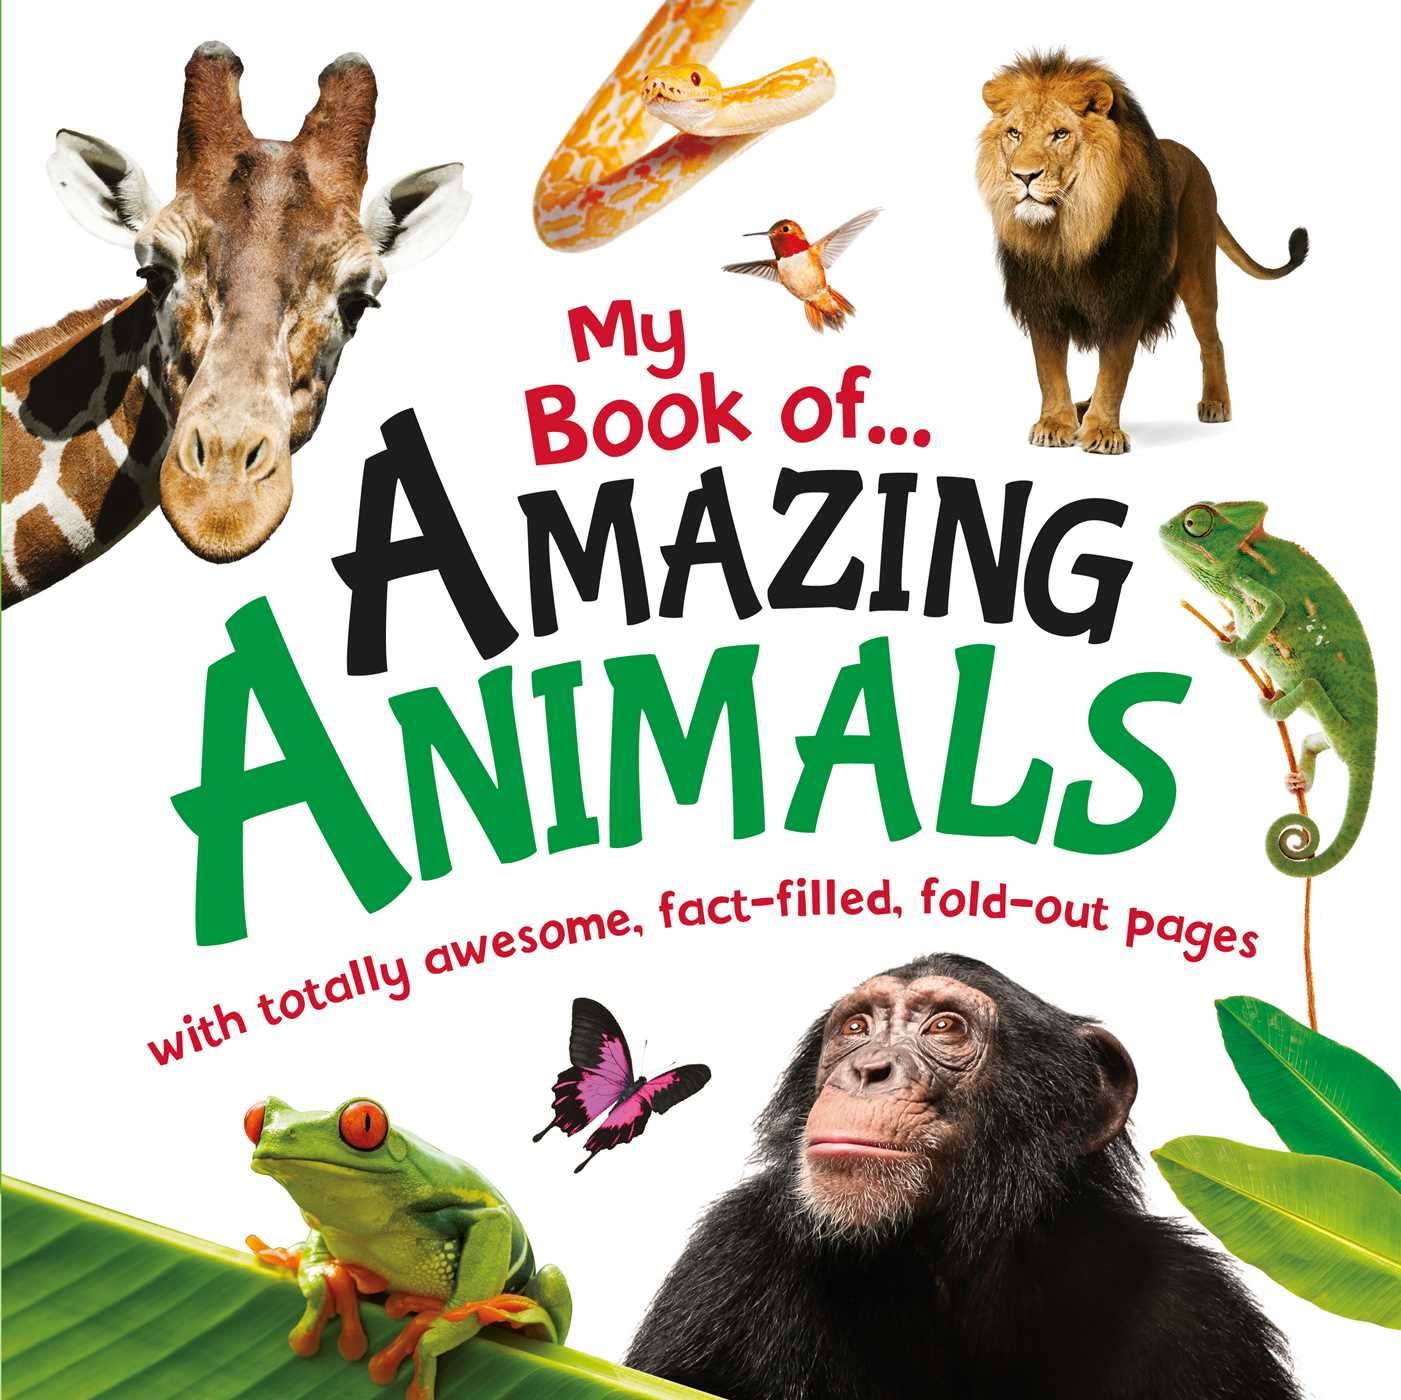 You Re Amazing Animals: My Book Of Amazing Animals